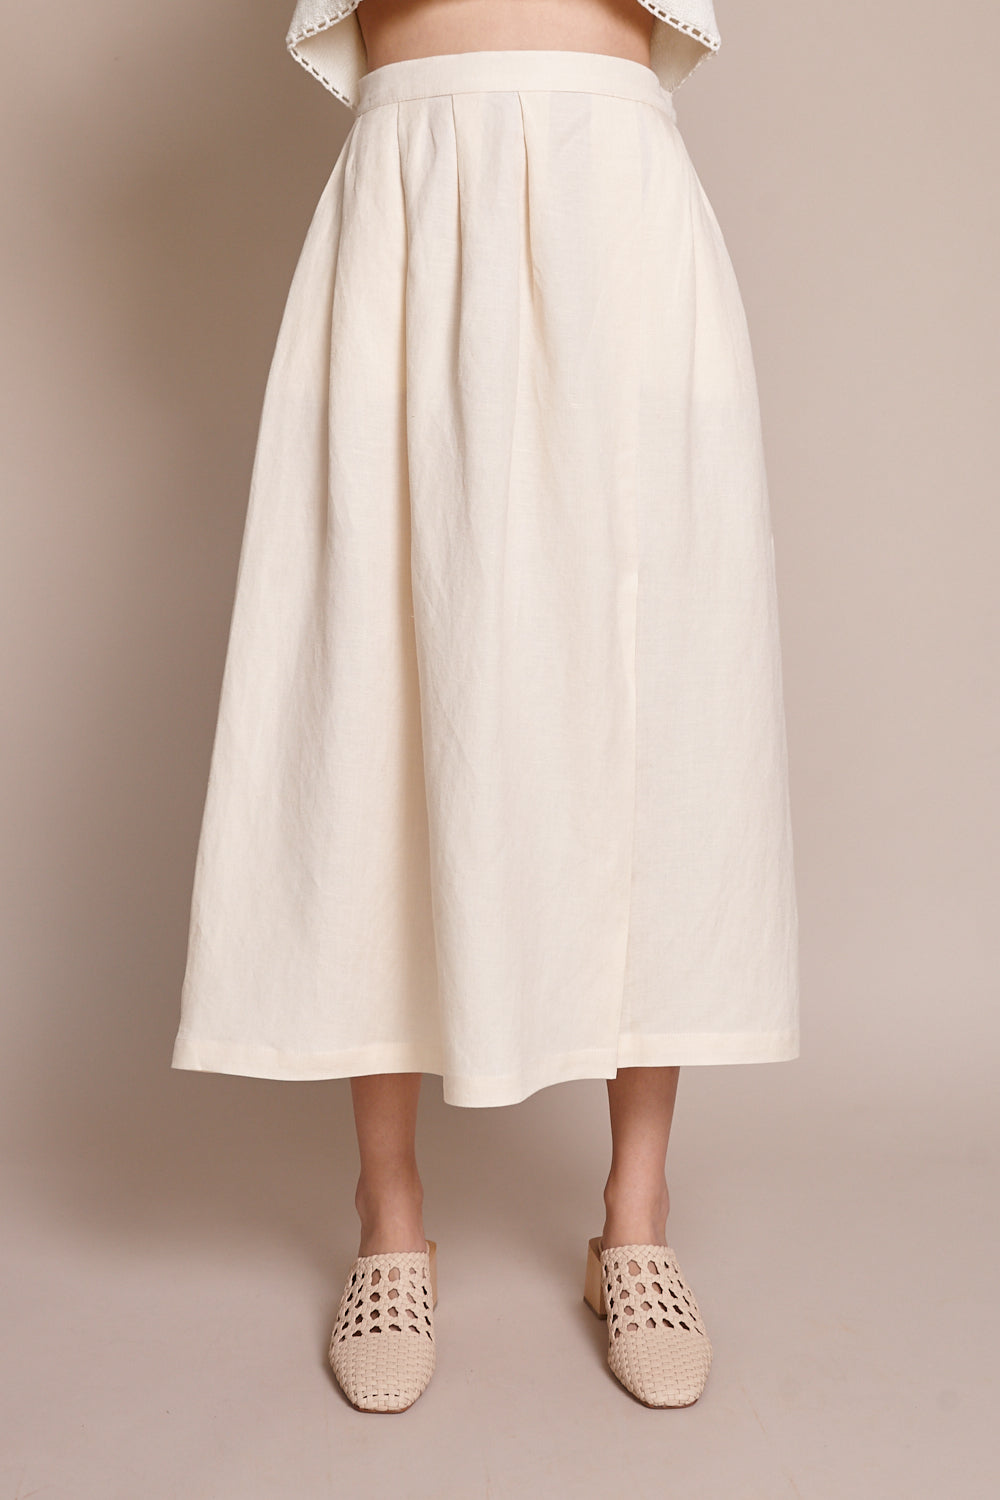 First Rite Pleated Skirt in Bone - Vert & Vogue